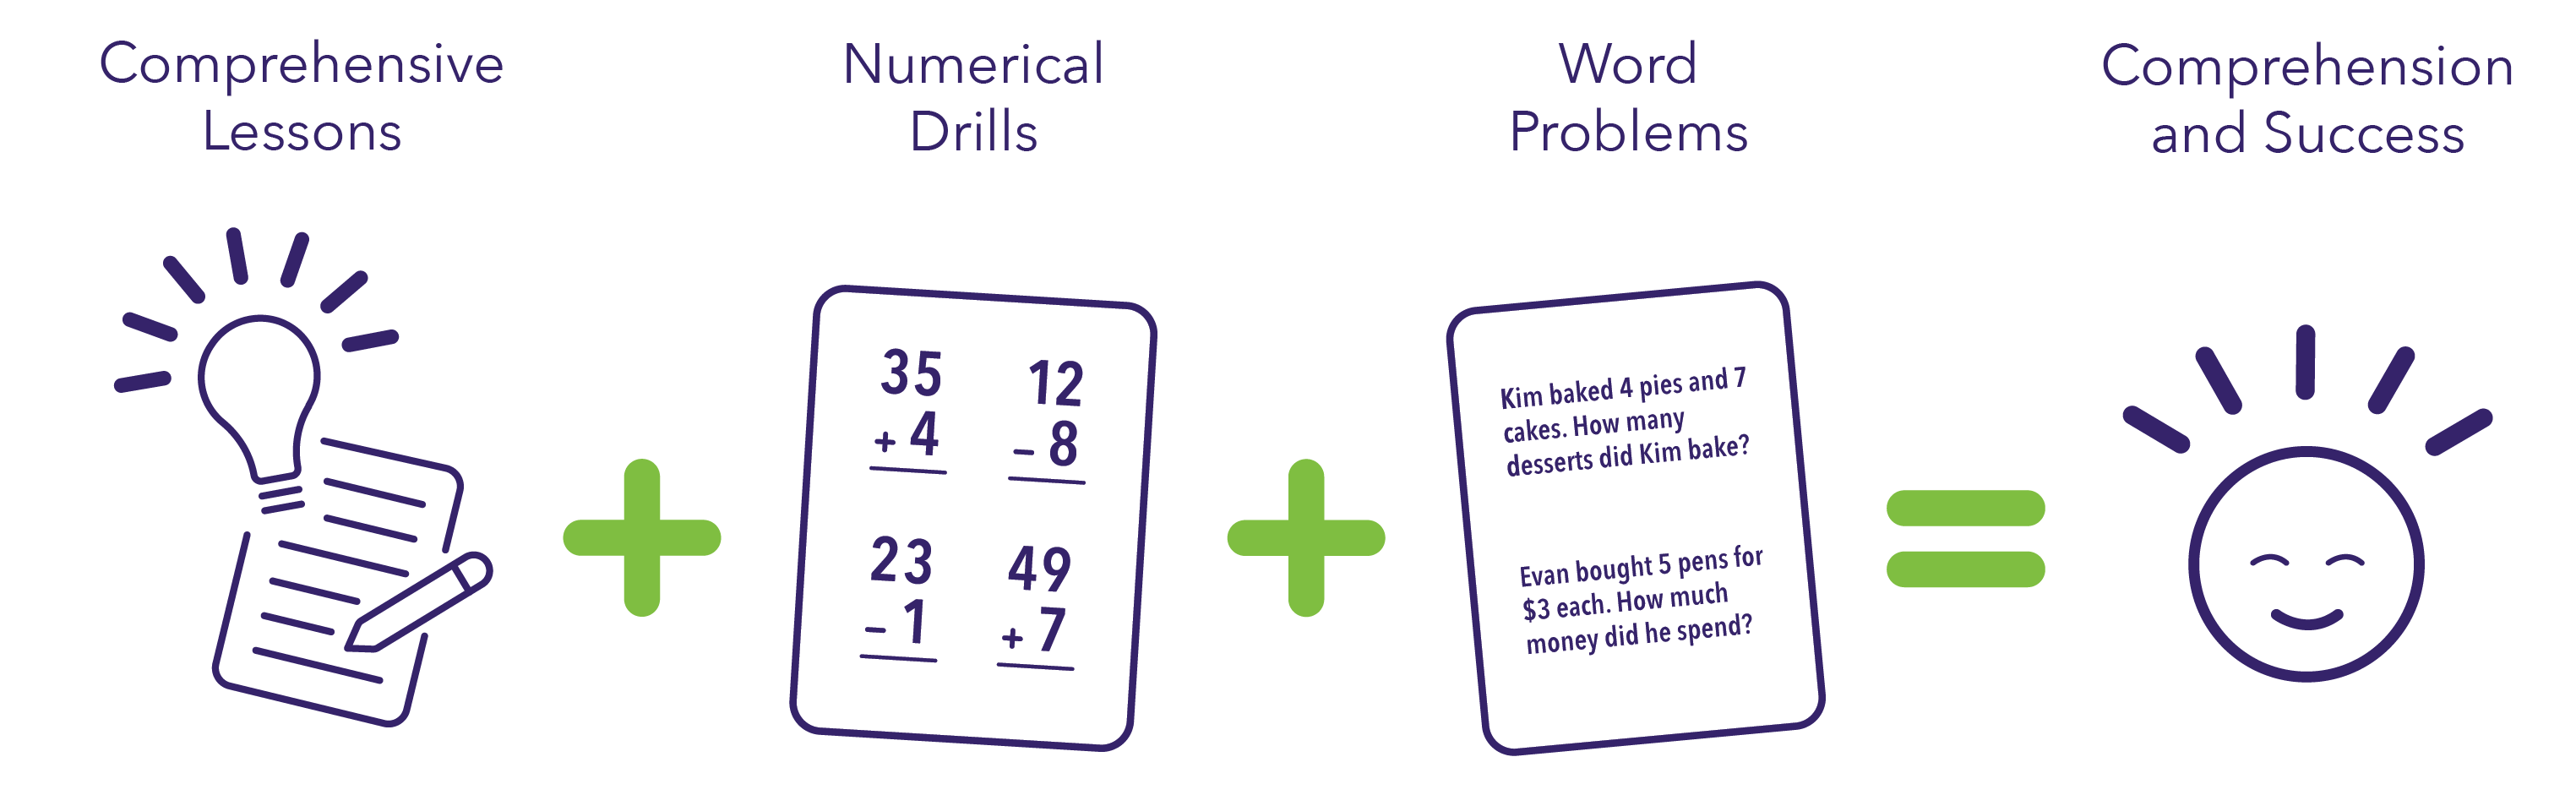 Math tutoring steps to success: Comprehensive lessons + numerical drills + word problems = comprehension and success